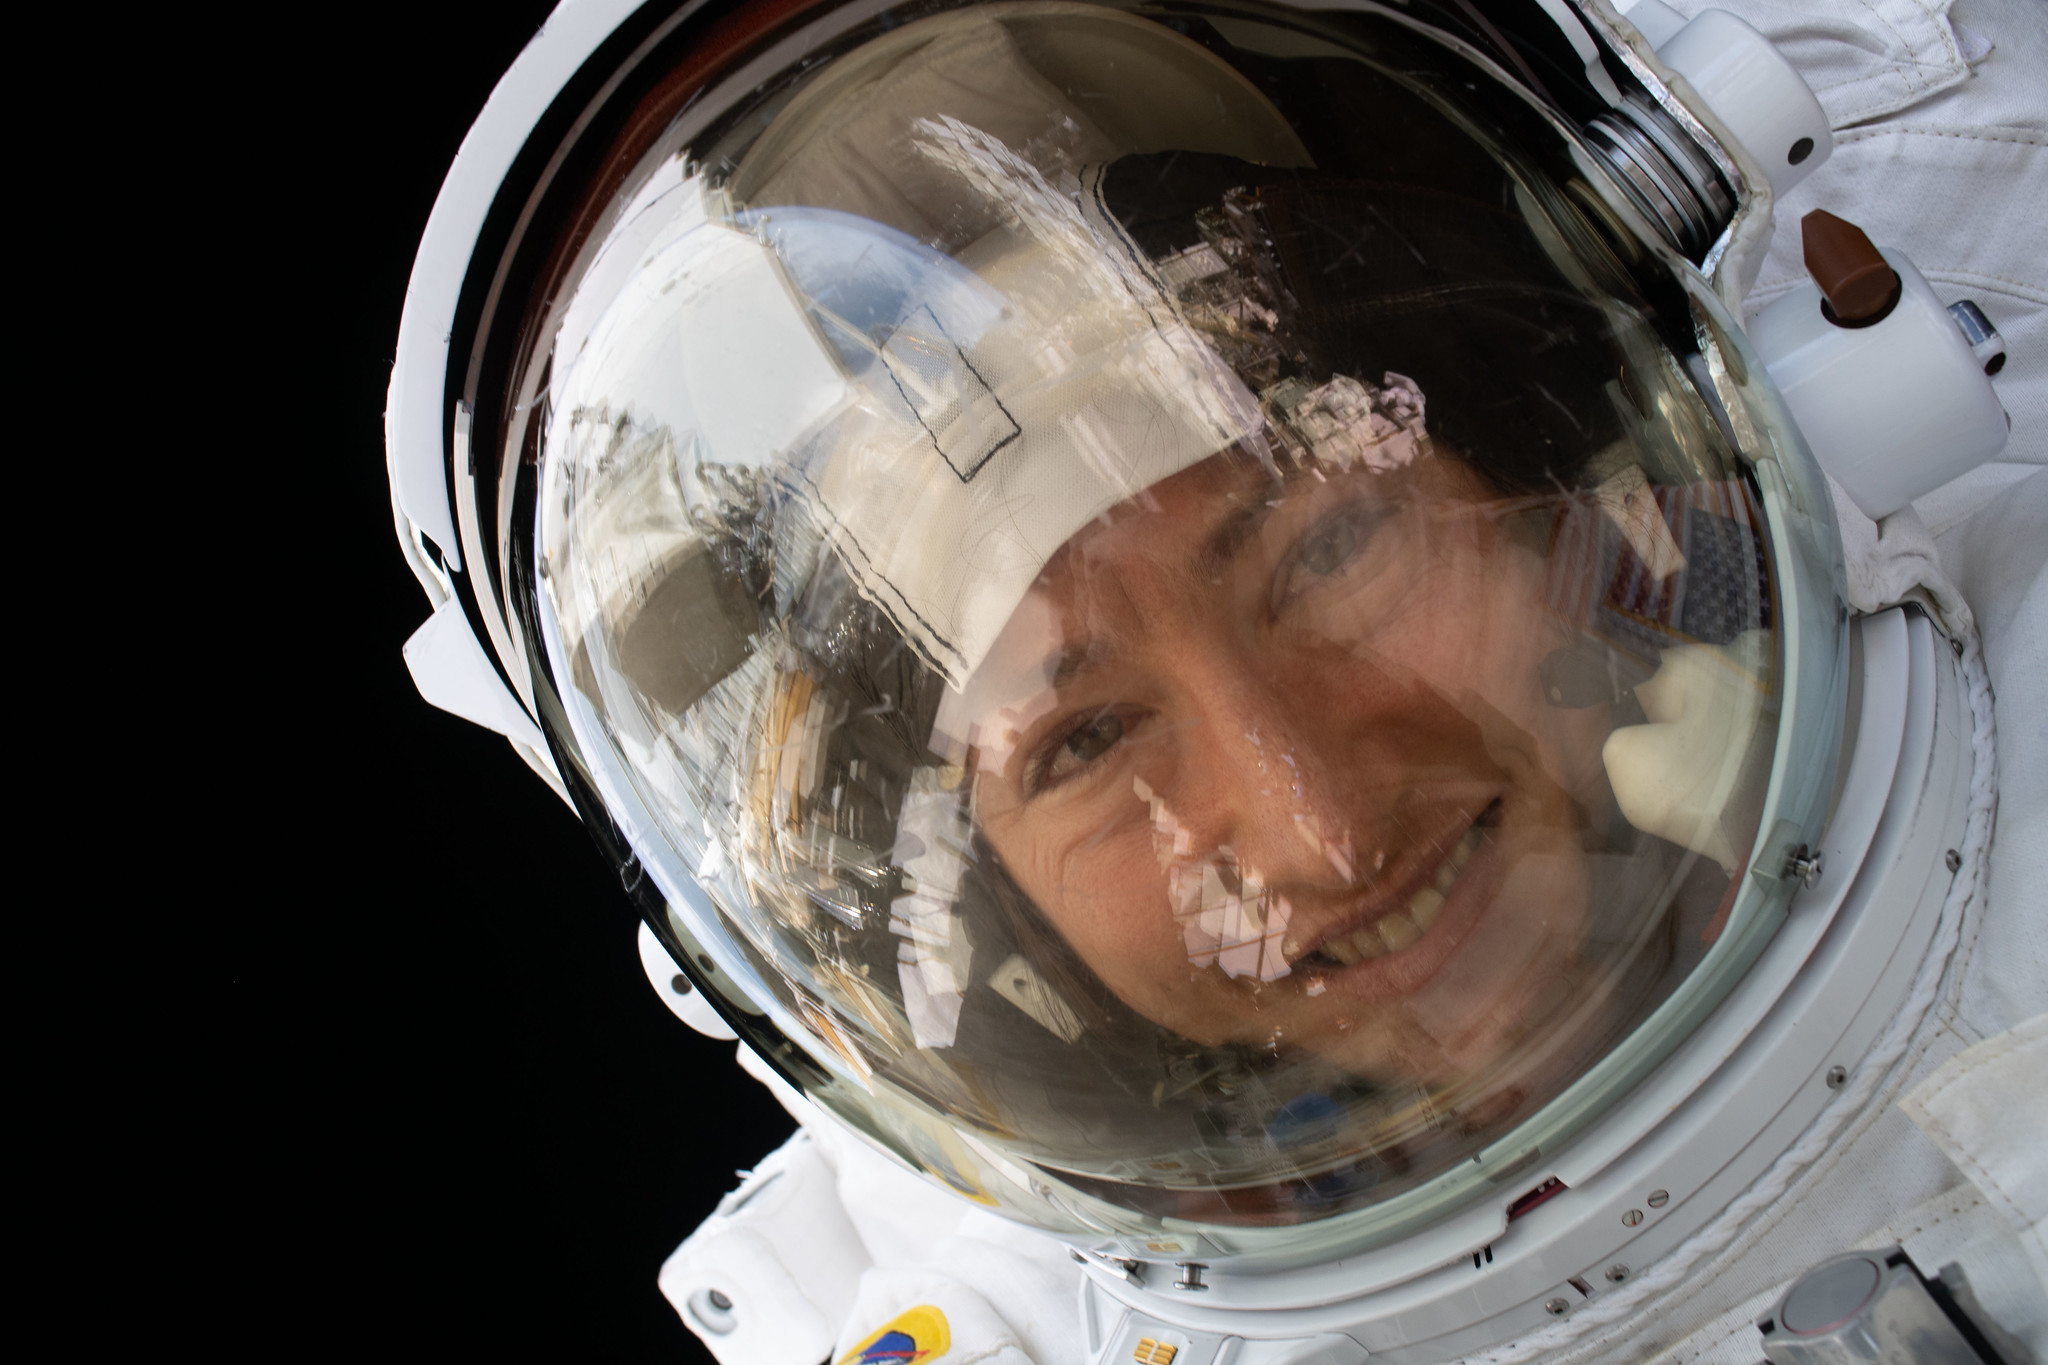 NASA Astronaut Christina Koch returns to earth after history-making stay at International Space Station